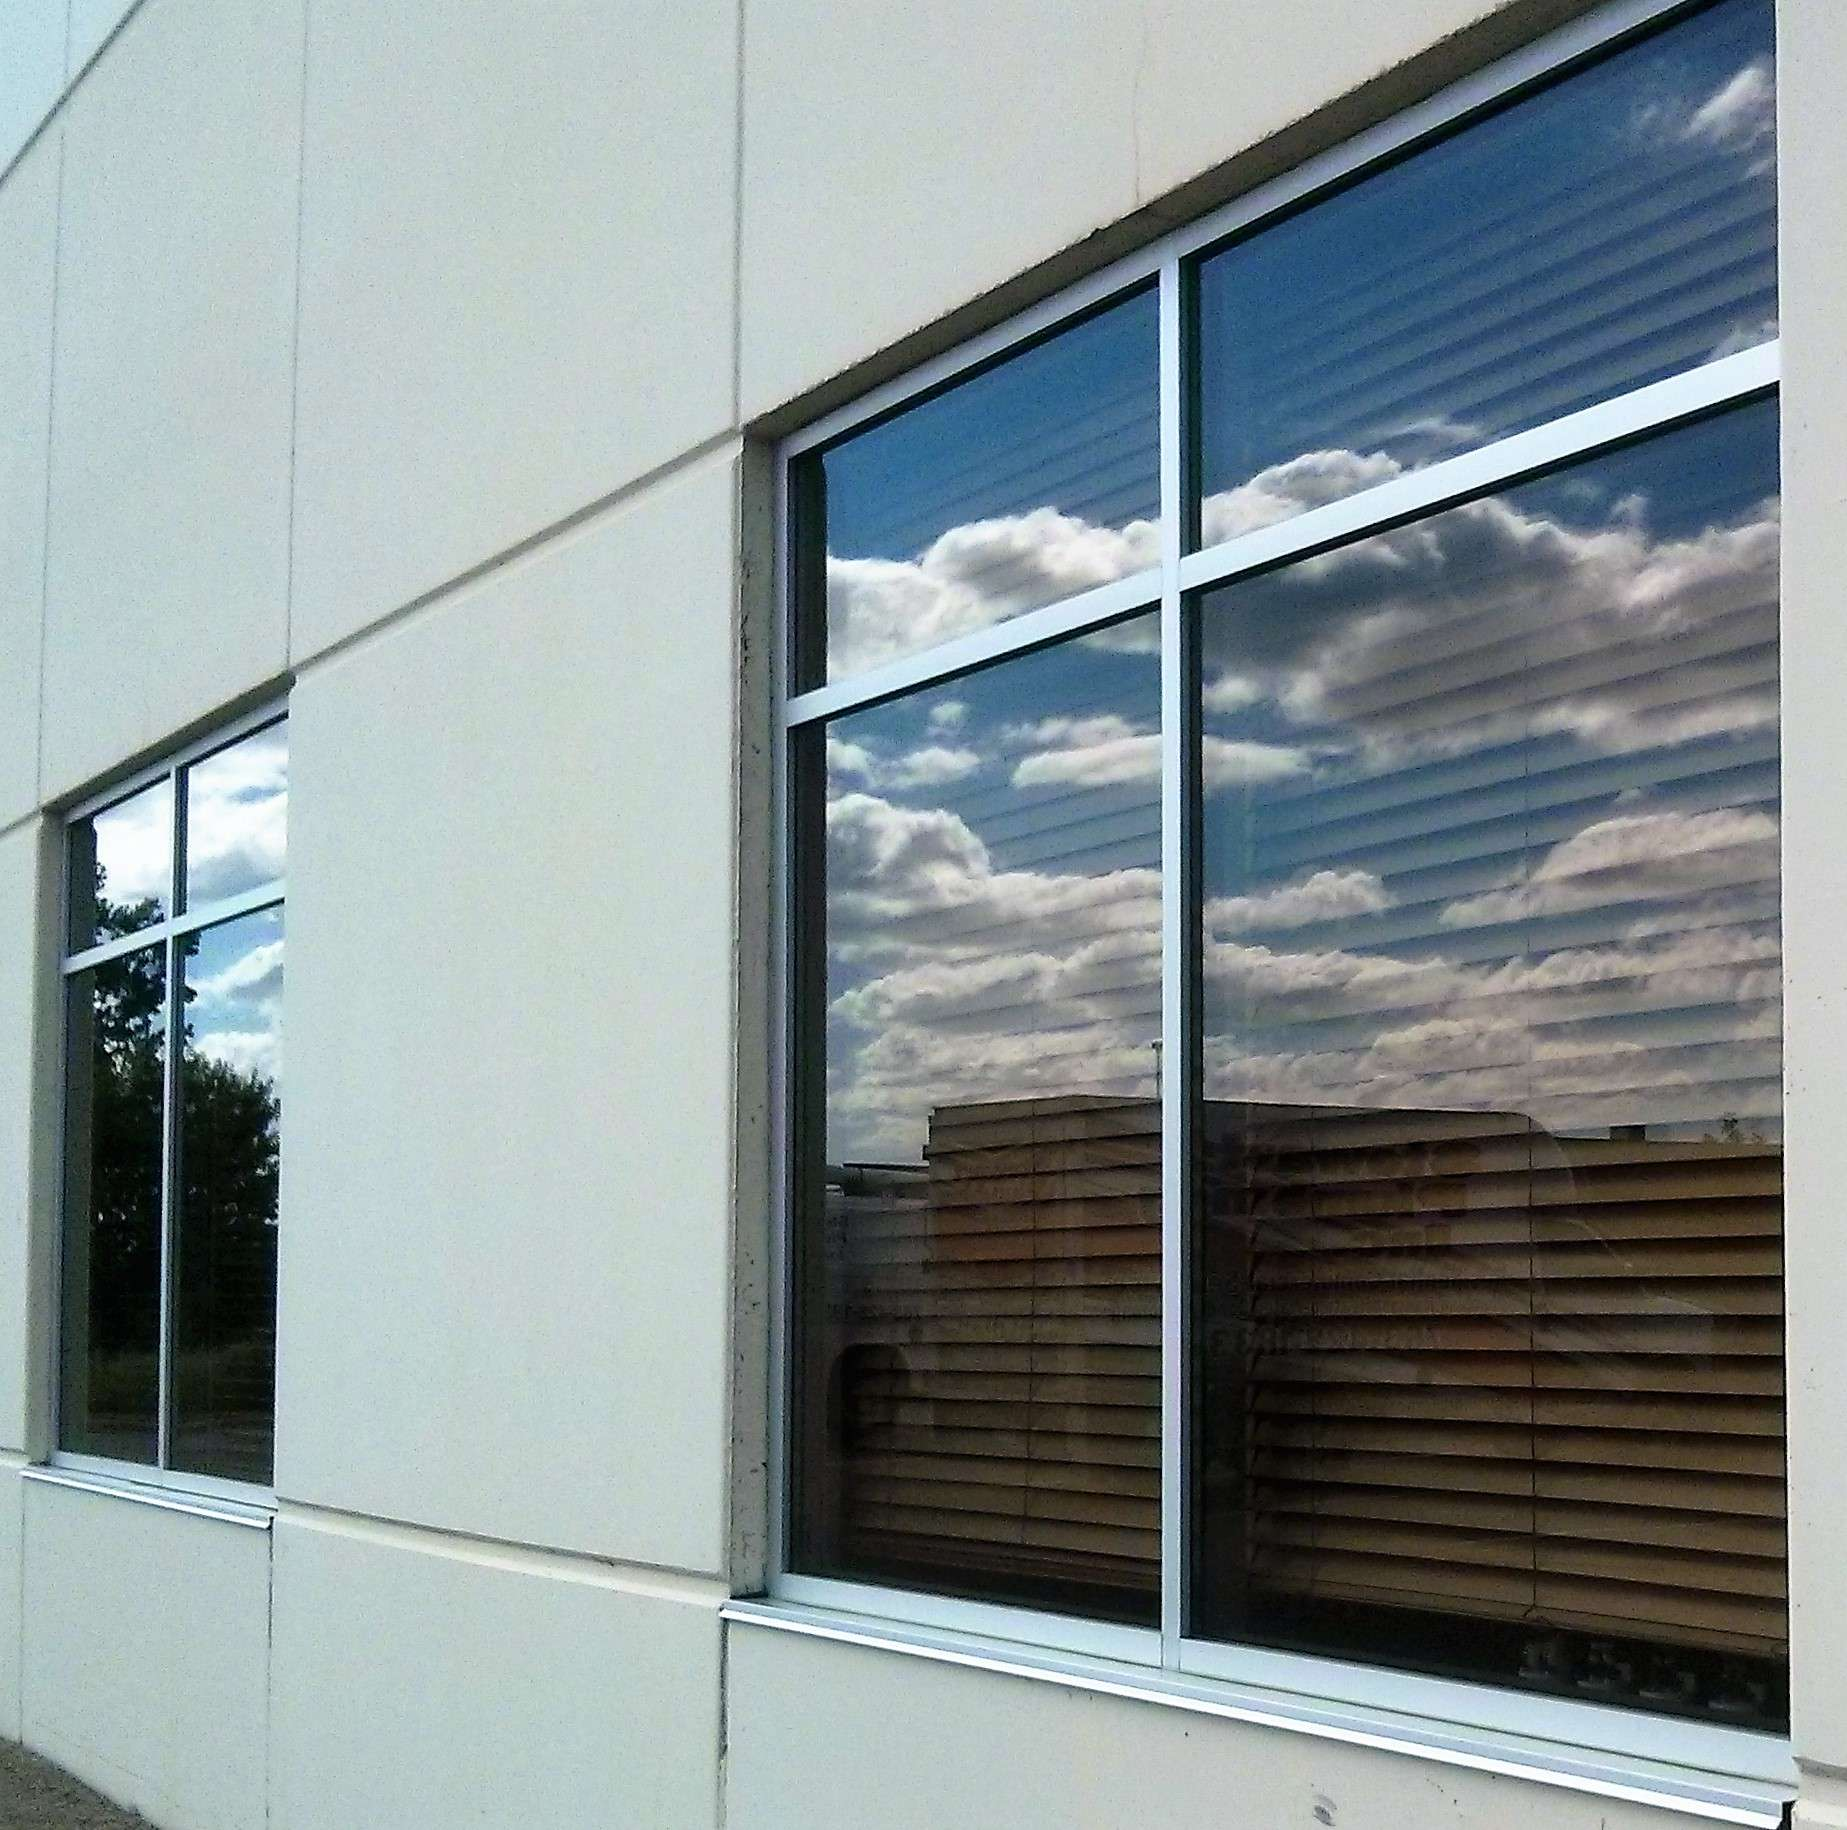 Commercial window cleaning services in minneapolis mn for Commercial windows